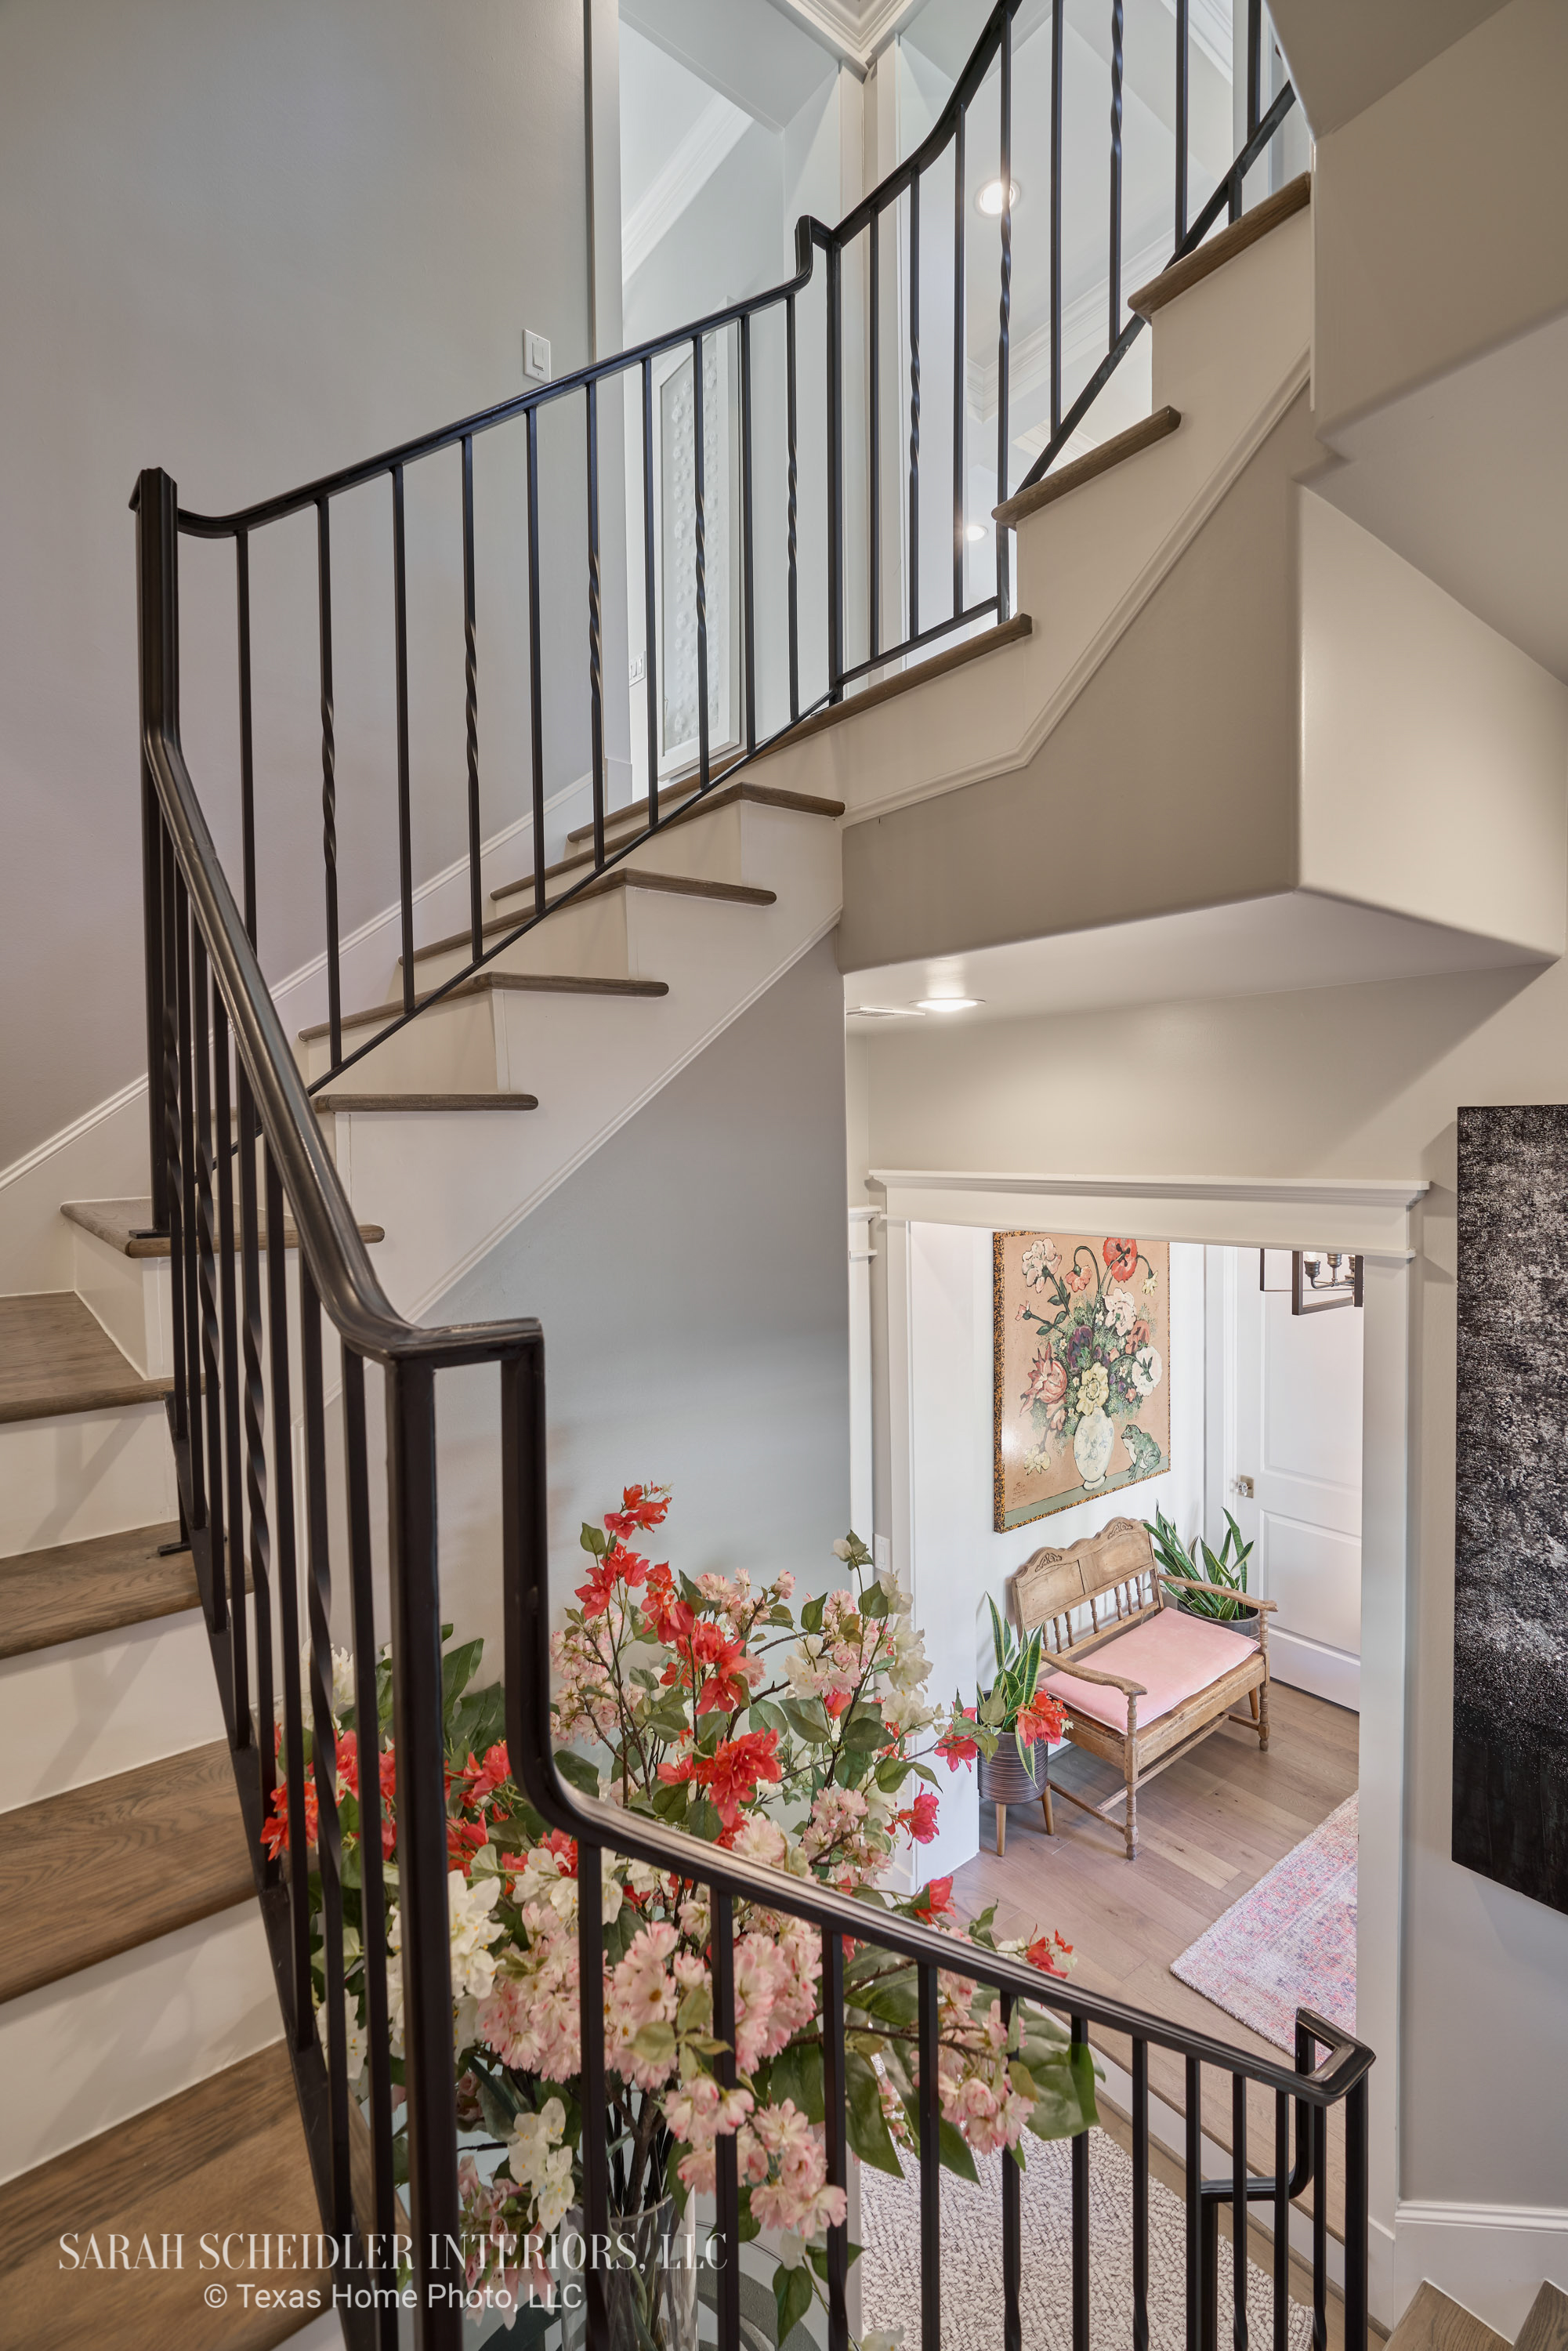 Stairway Design with Large-Scale Art and Greenery and Florals